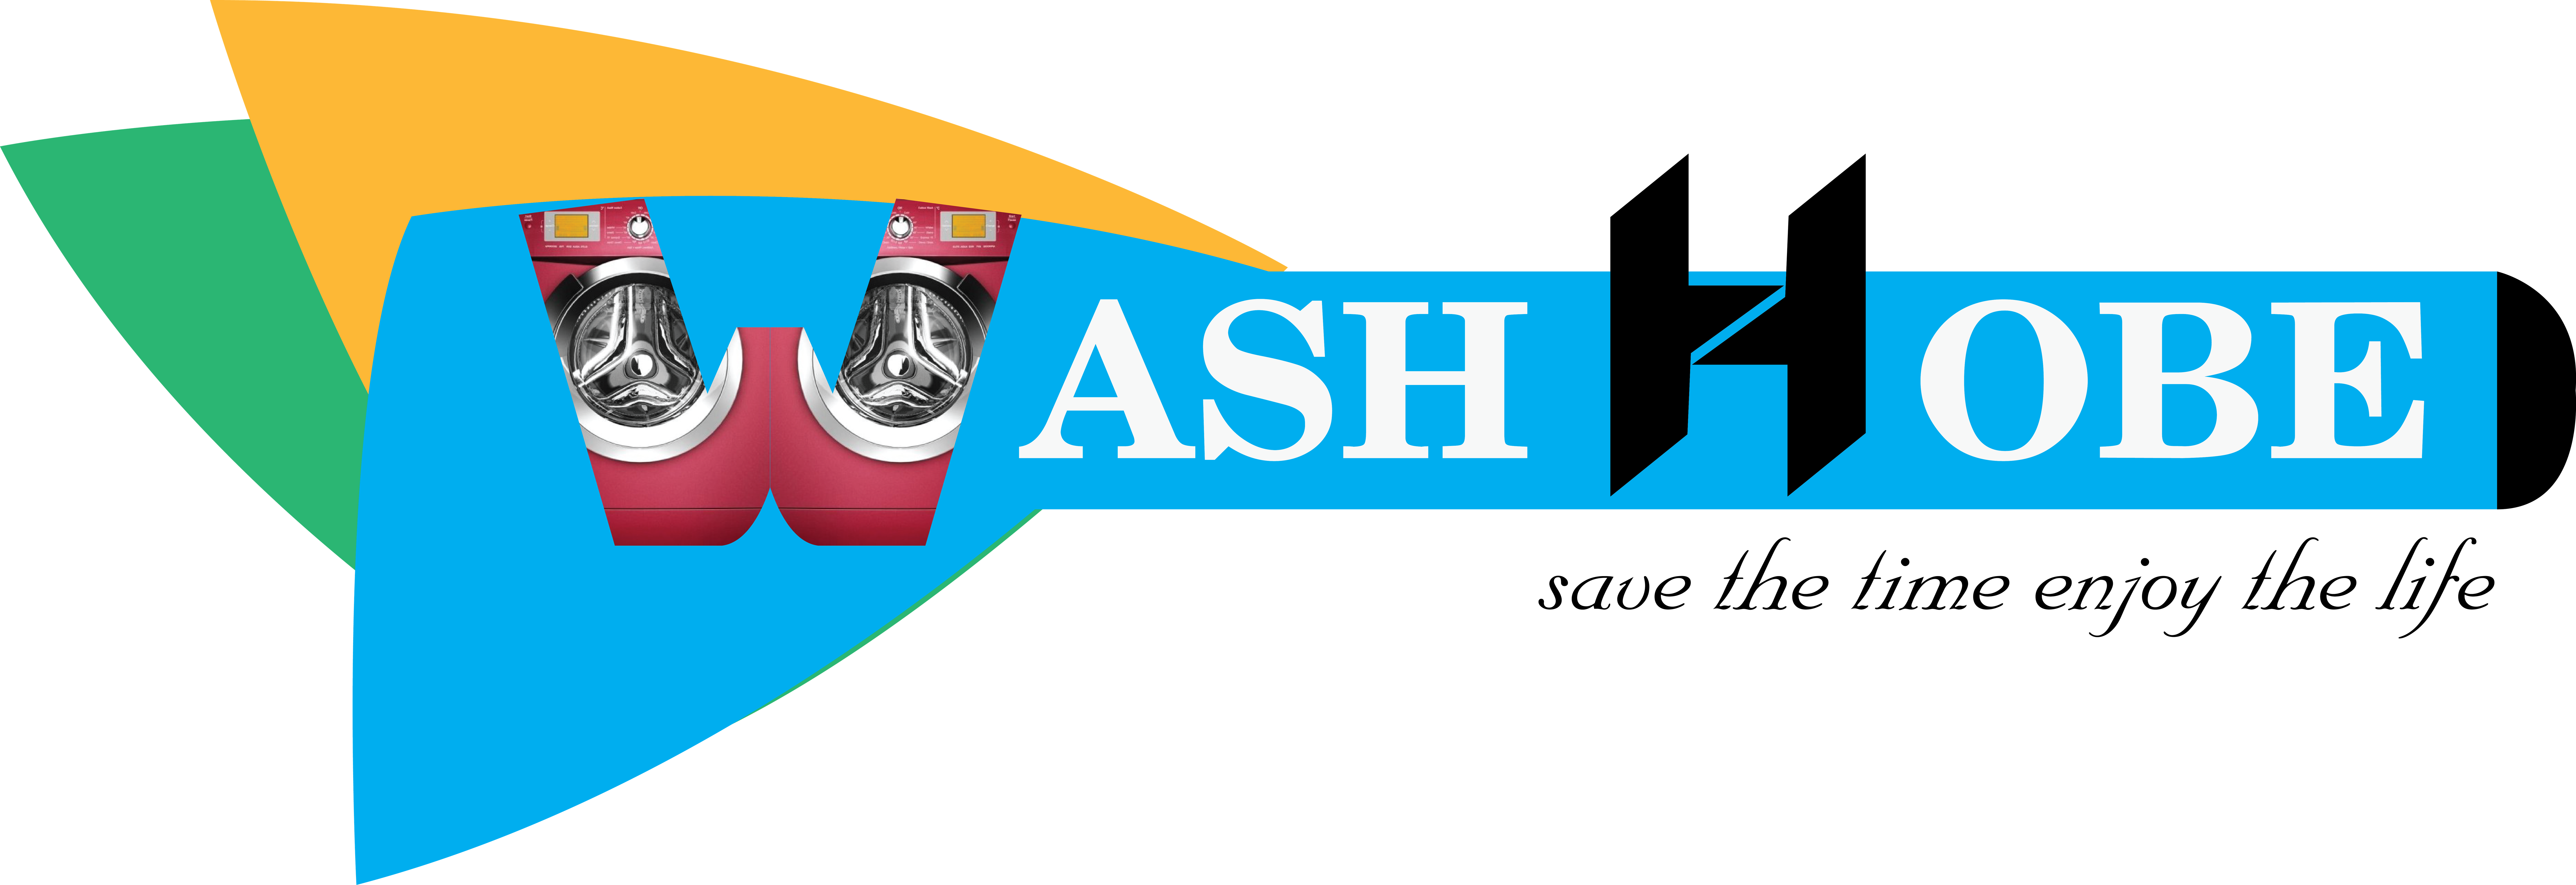 Washhobe Best Laundry and Dry Cleaning Service